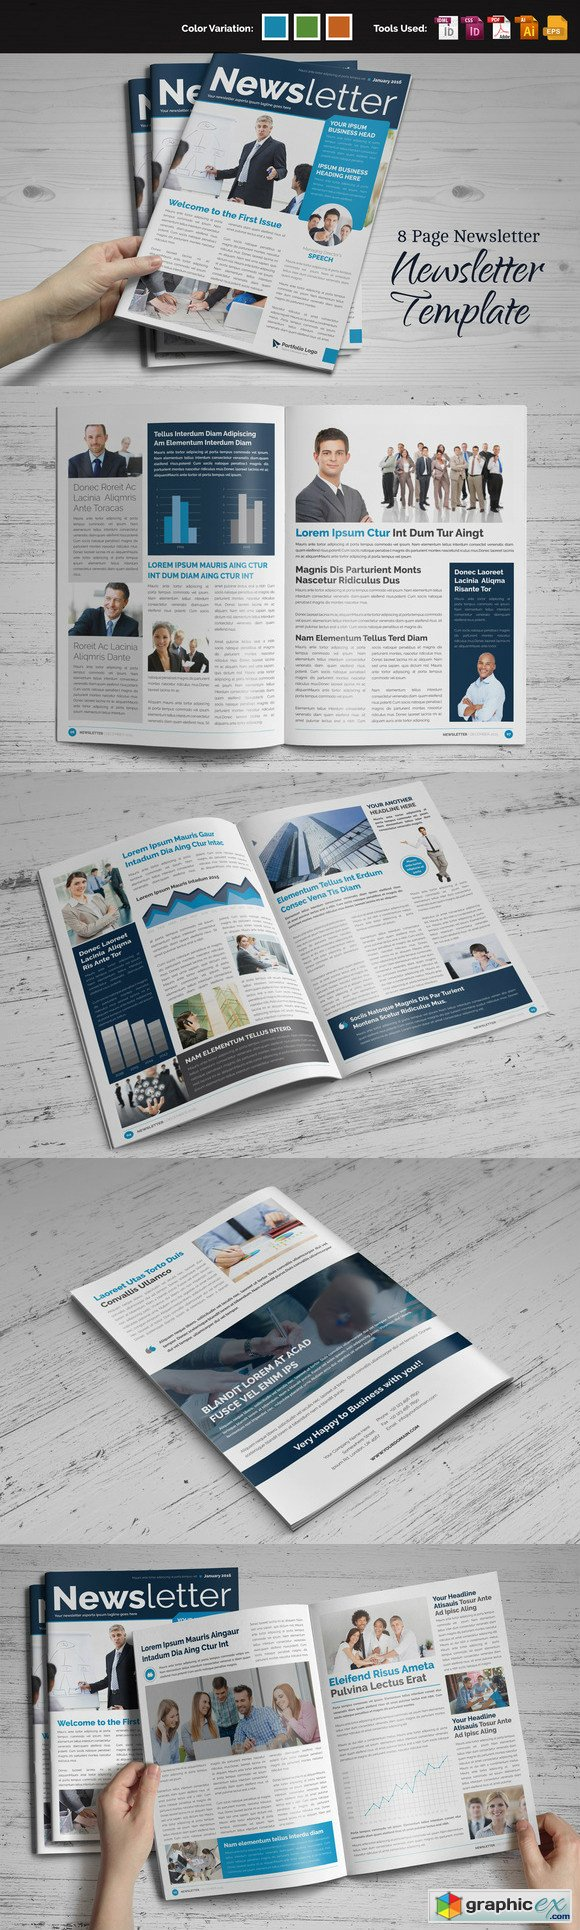 Newsletter Indesign Template 464762